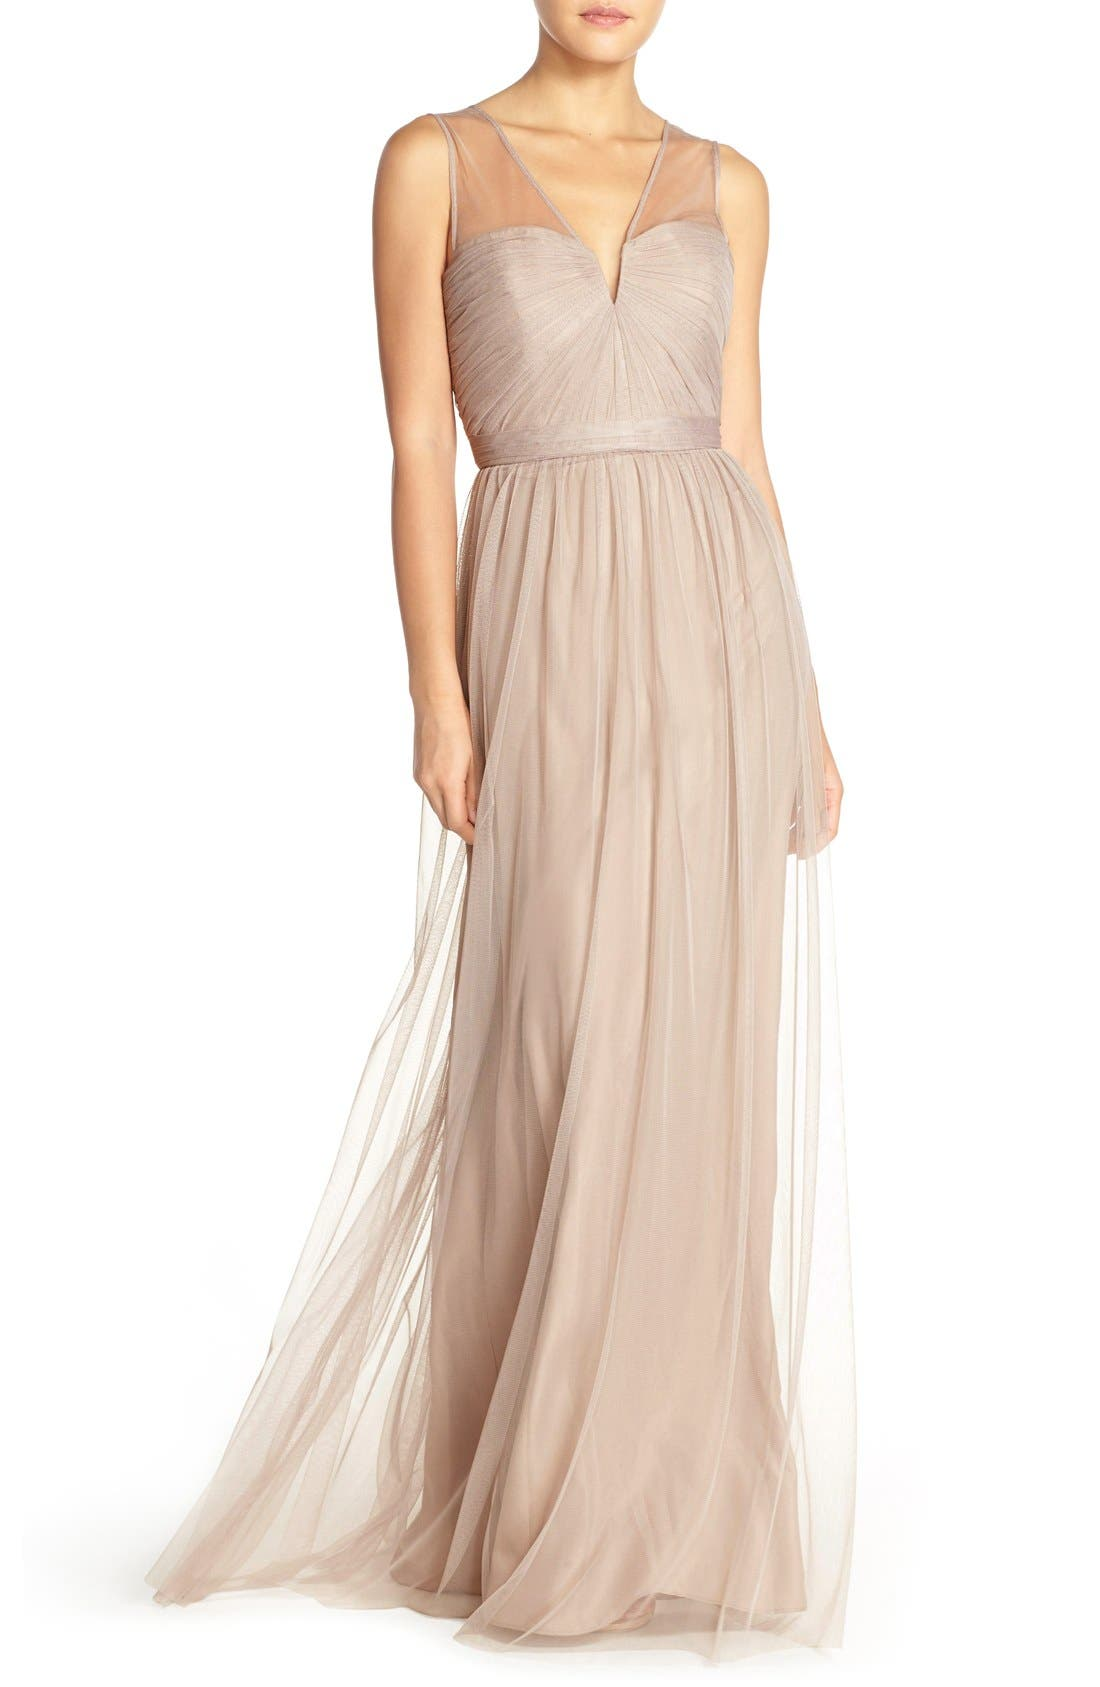 'Alyce' Illusion V-Neck Pleat Tulle Gown,                             Main thumbnail 2, color,